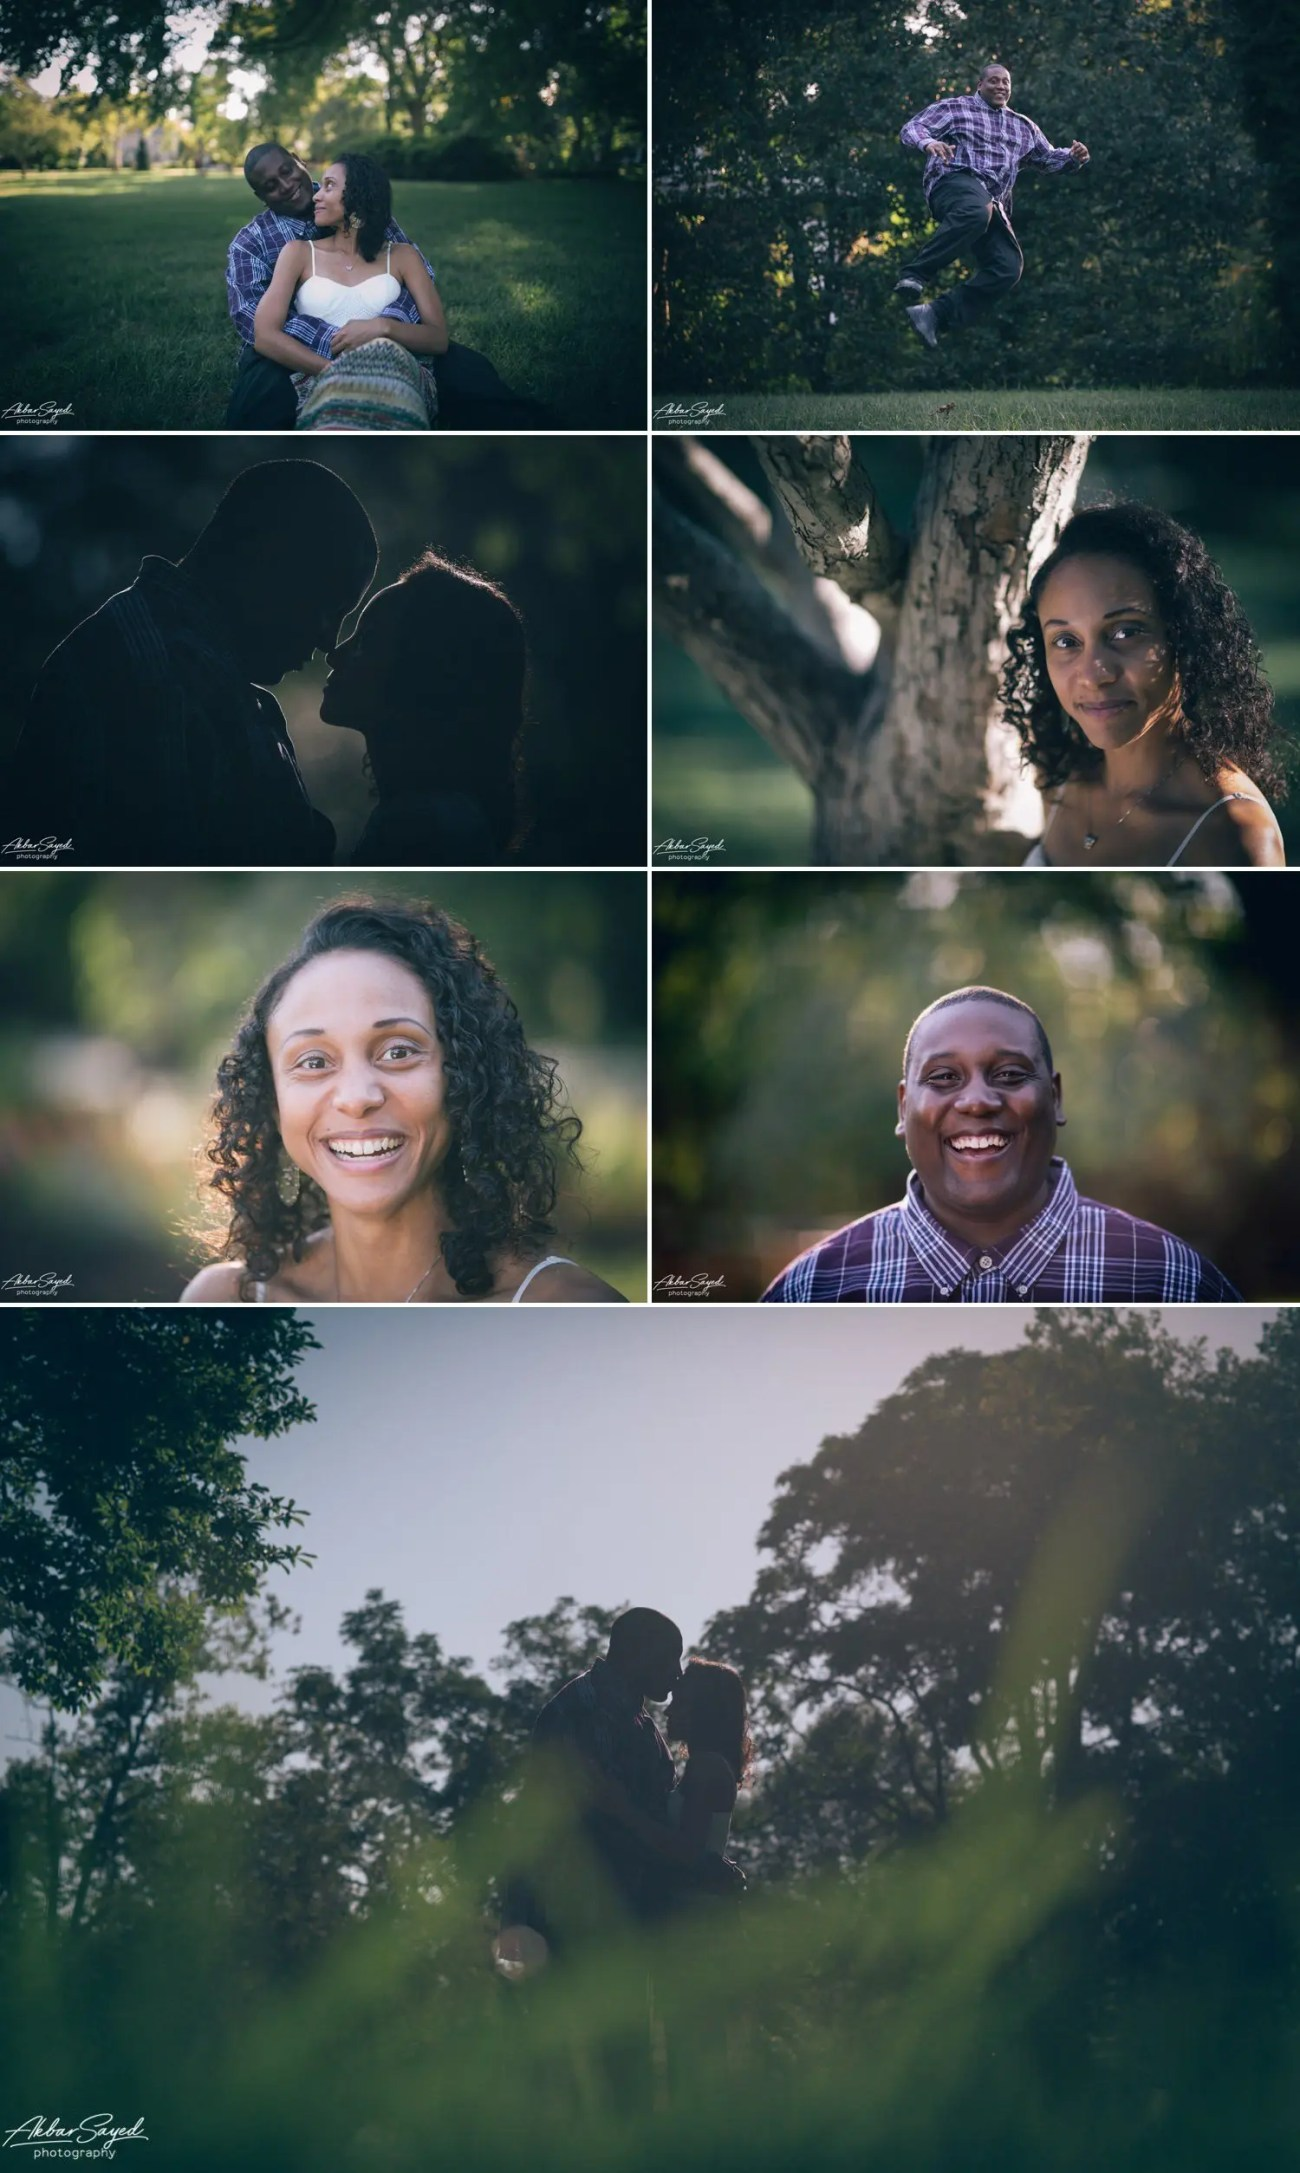 Avon and Tracie - Sherwood Garden Engagement Session 4